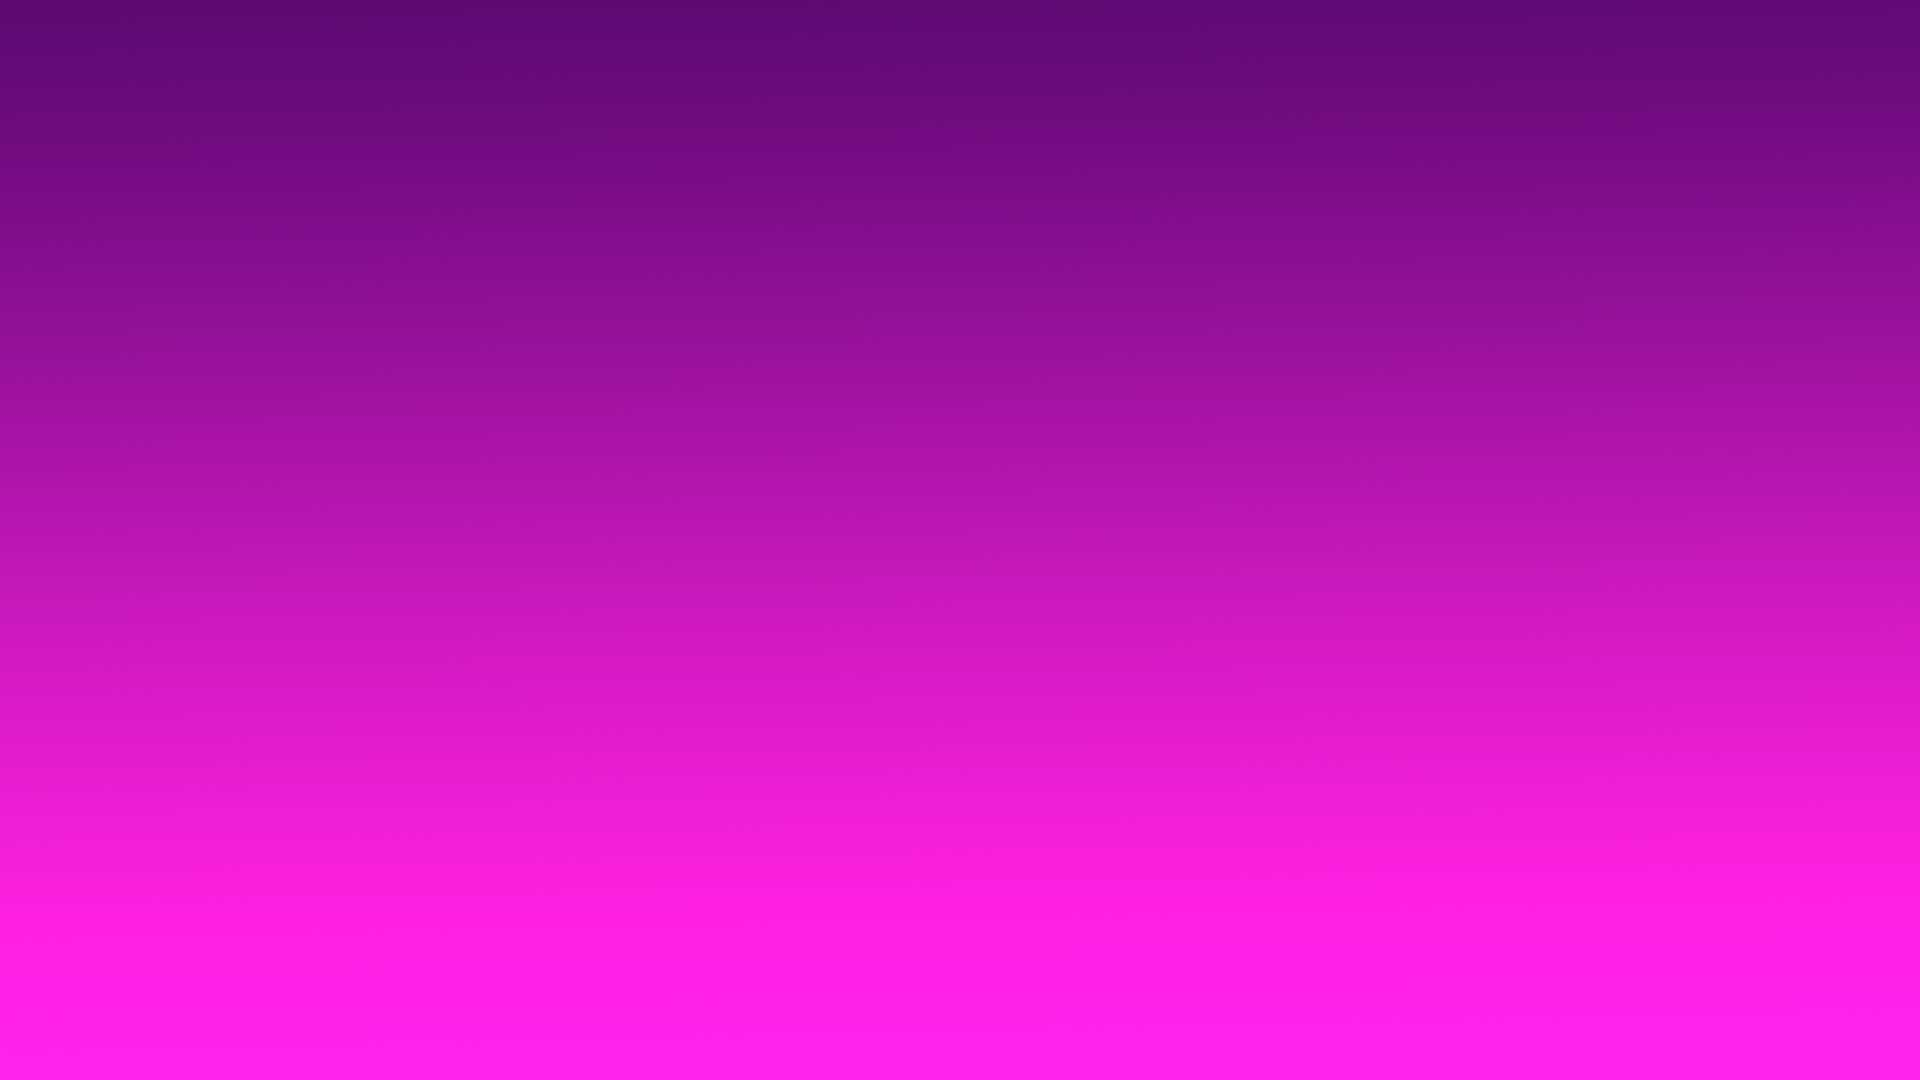 Pink and Purple Gradient